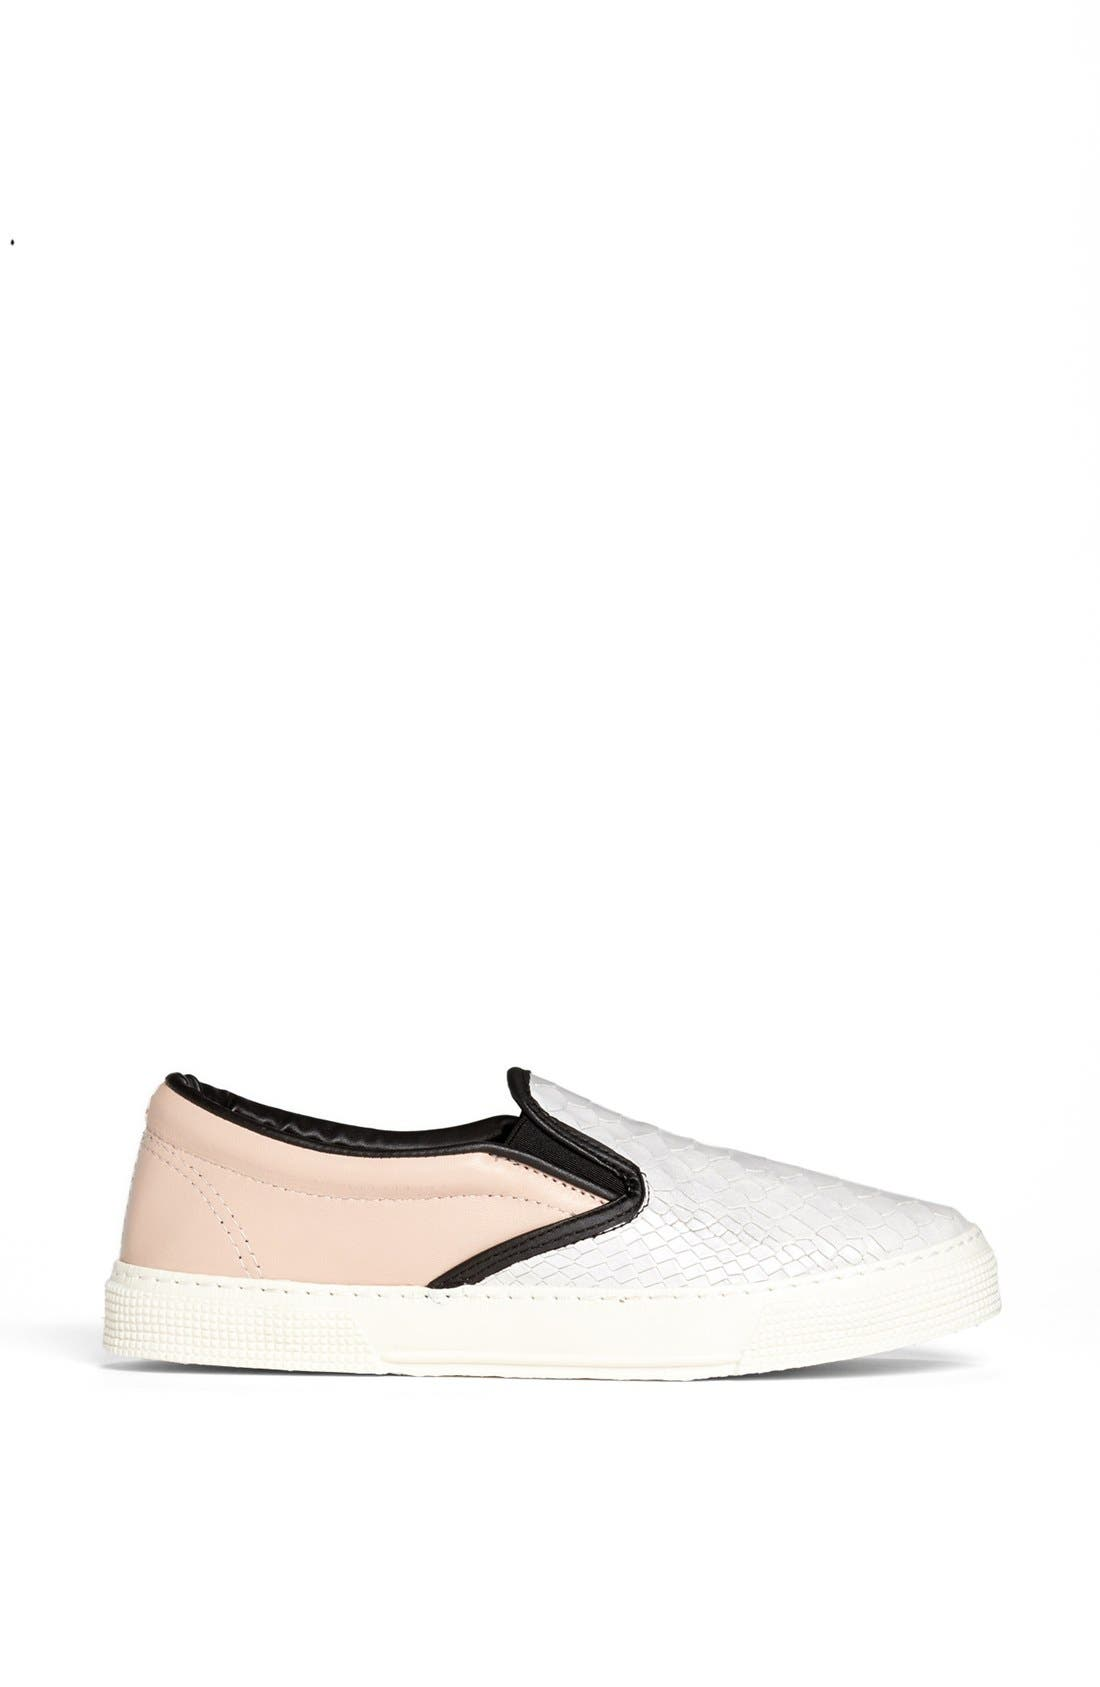 Slip-On Sneaker,                             Alternate thumbnail 4, color,                             050